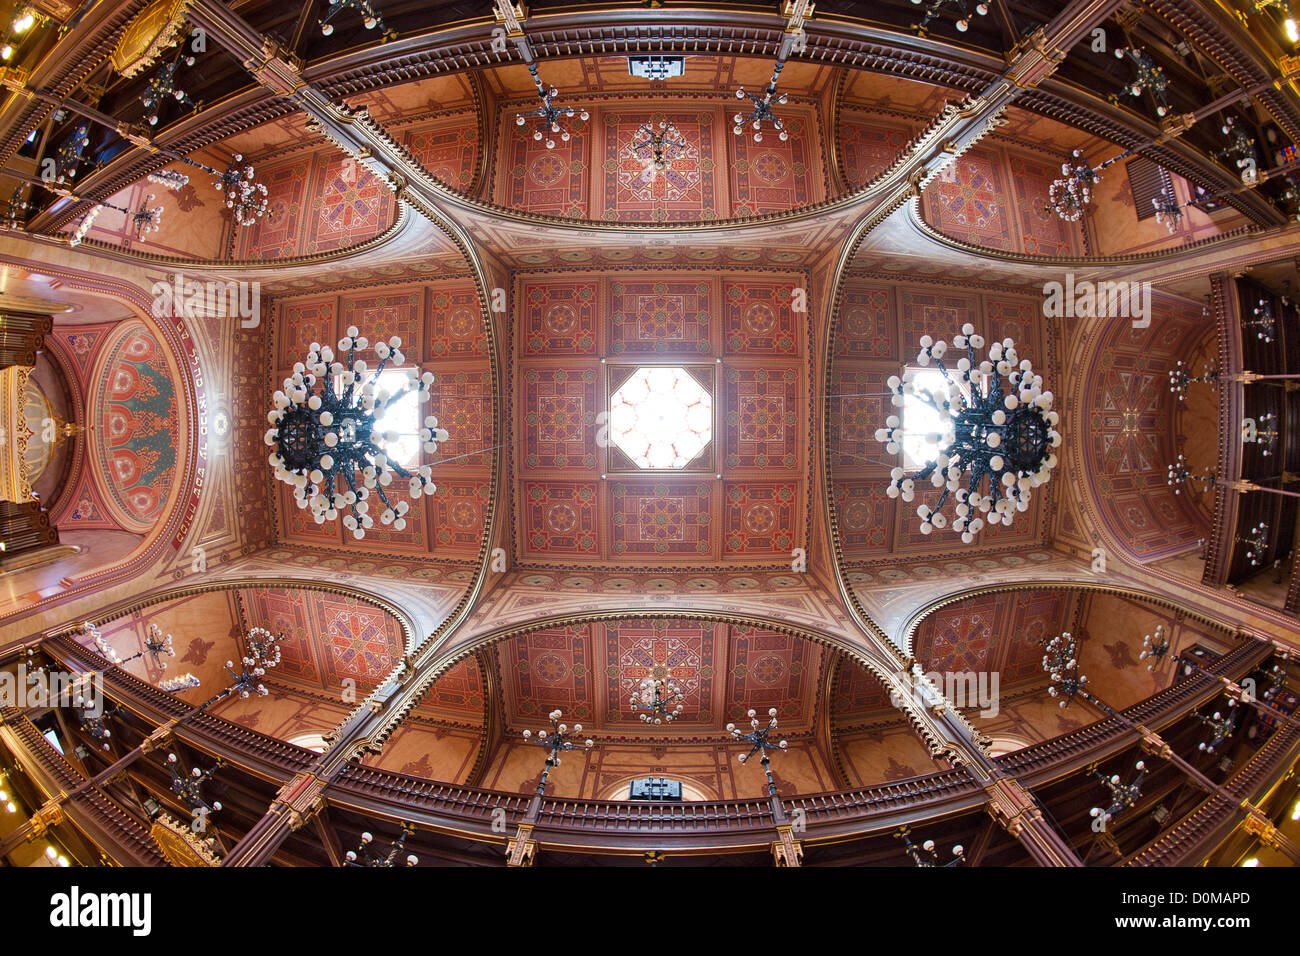 Interior and ceiling of the Dohány Street Synagogue in Budapest, the capital of Hungary. - Stock Image